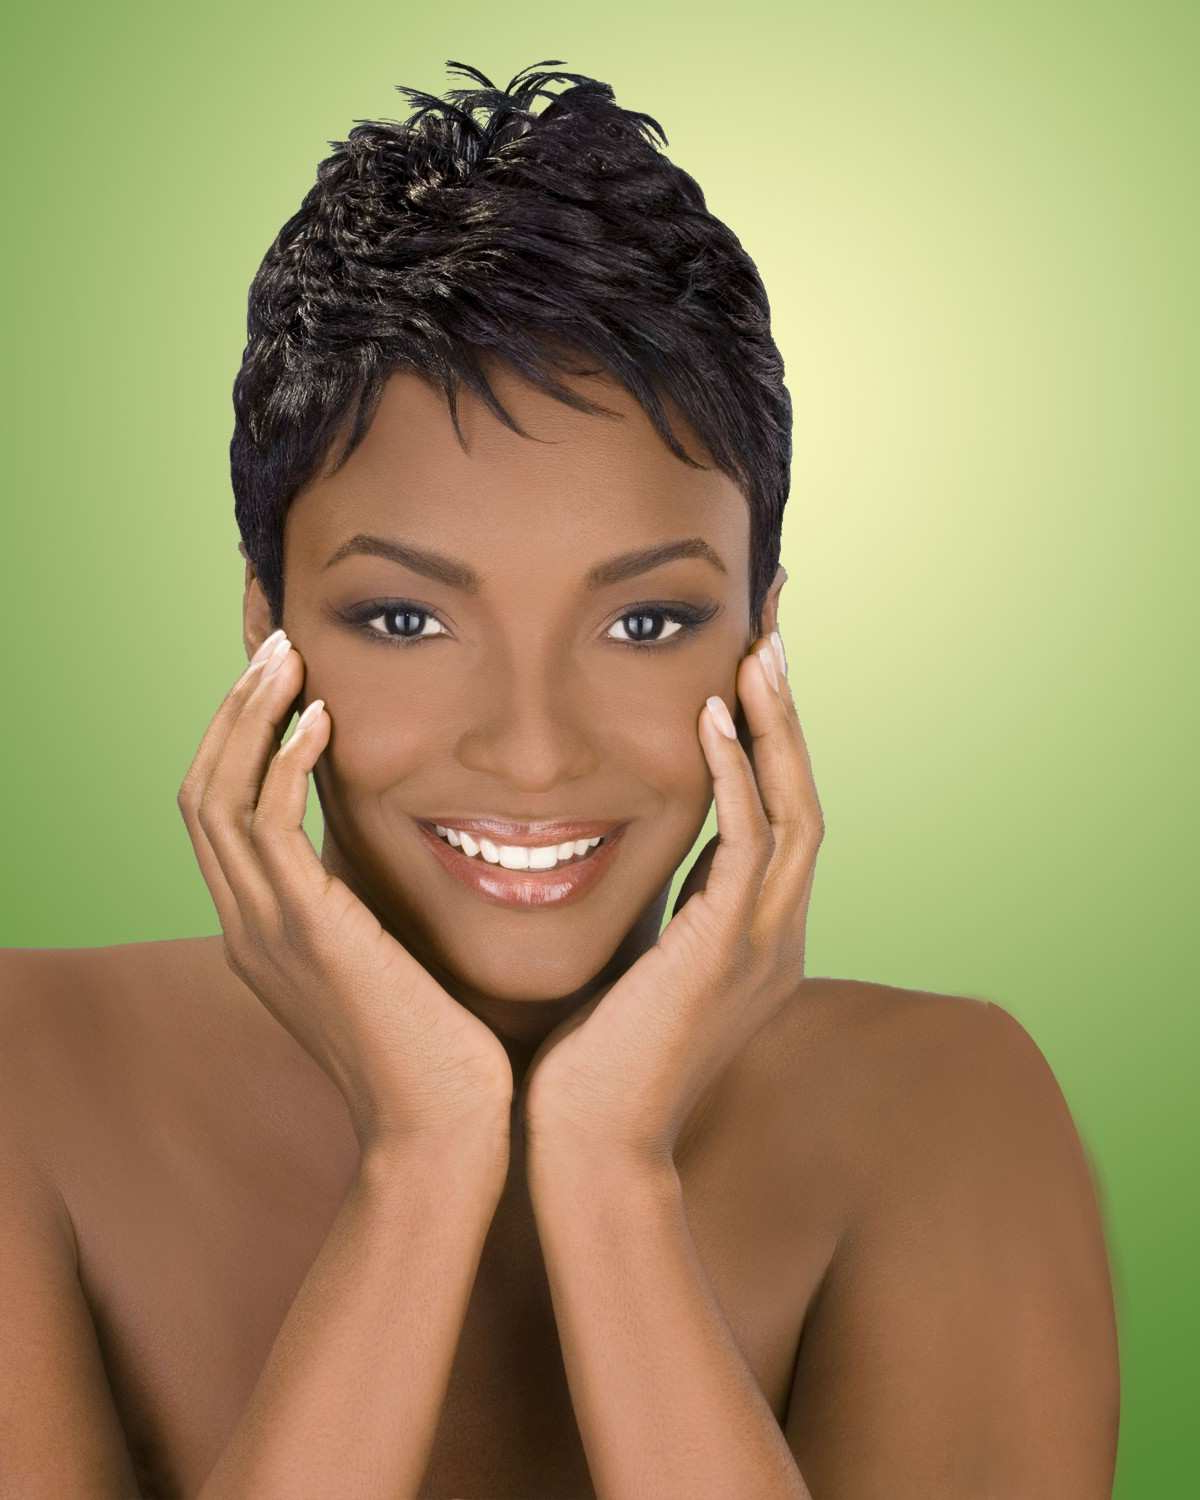 Short Hair Style For Black Women Best Of Top 14 Casual Short Throughout Black Women With Short Hairstyles (View 14 of 25)